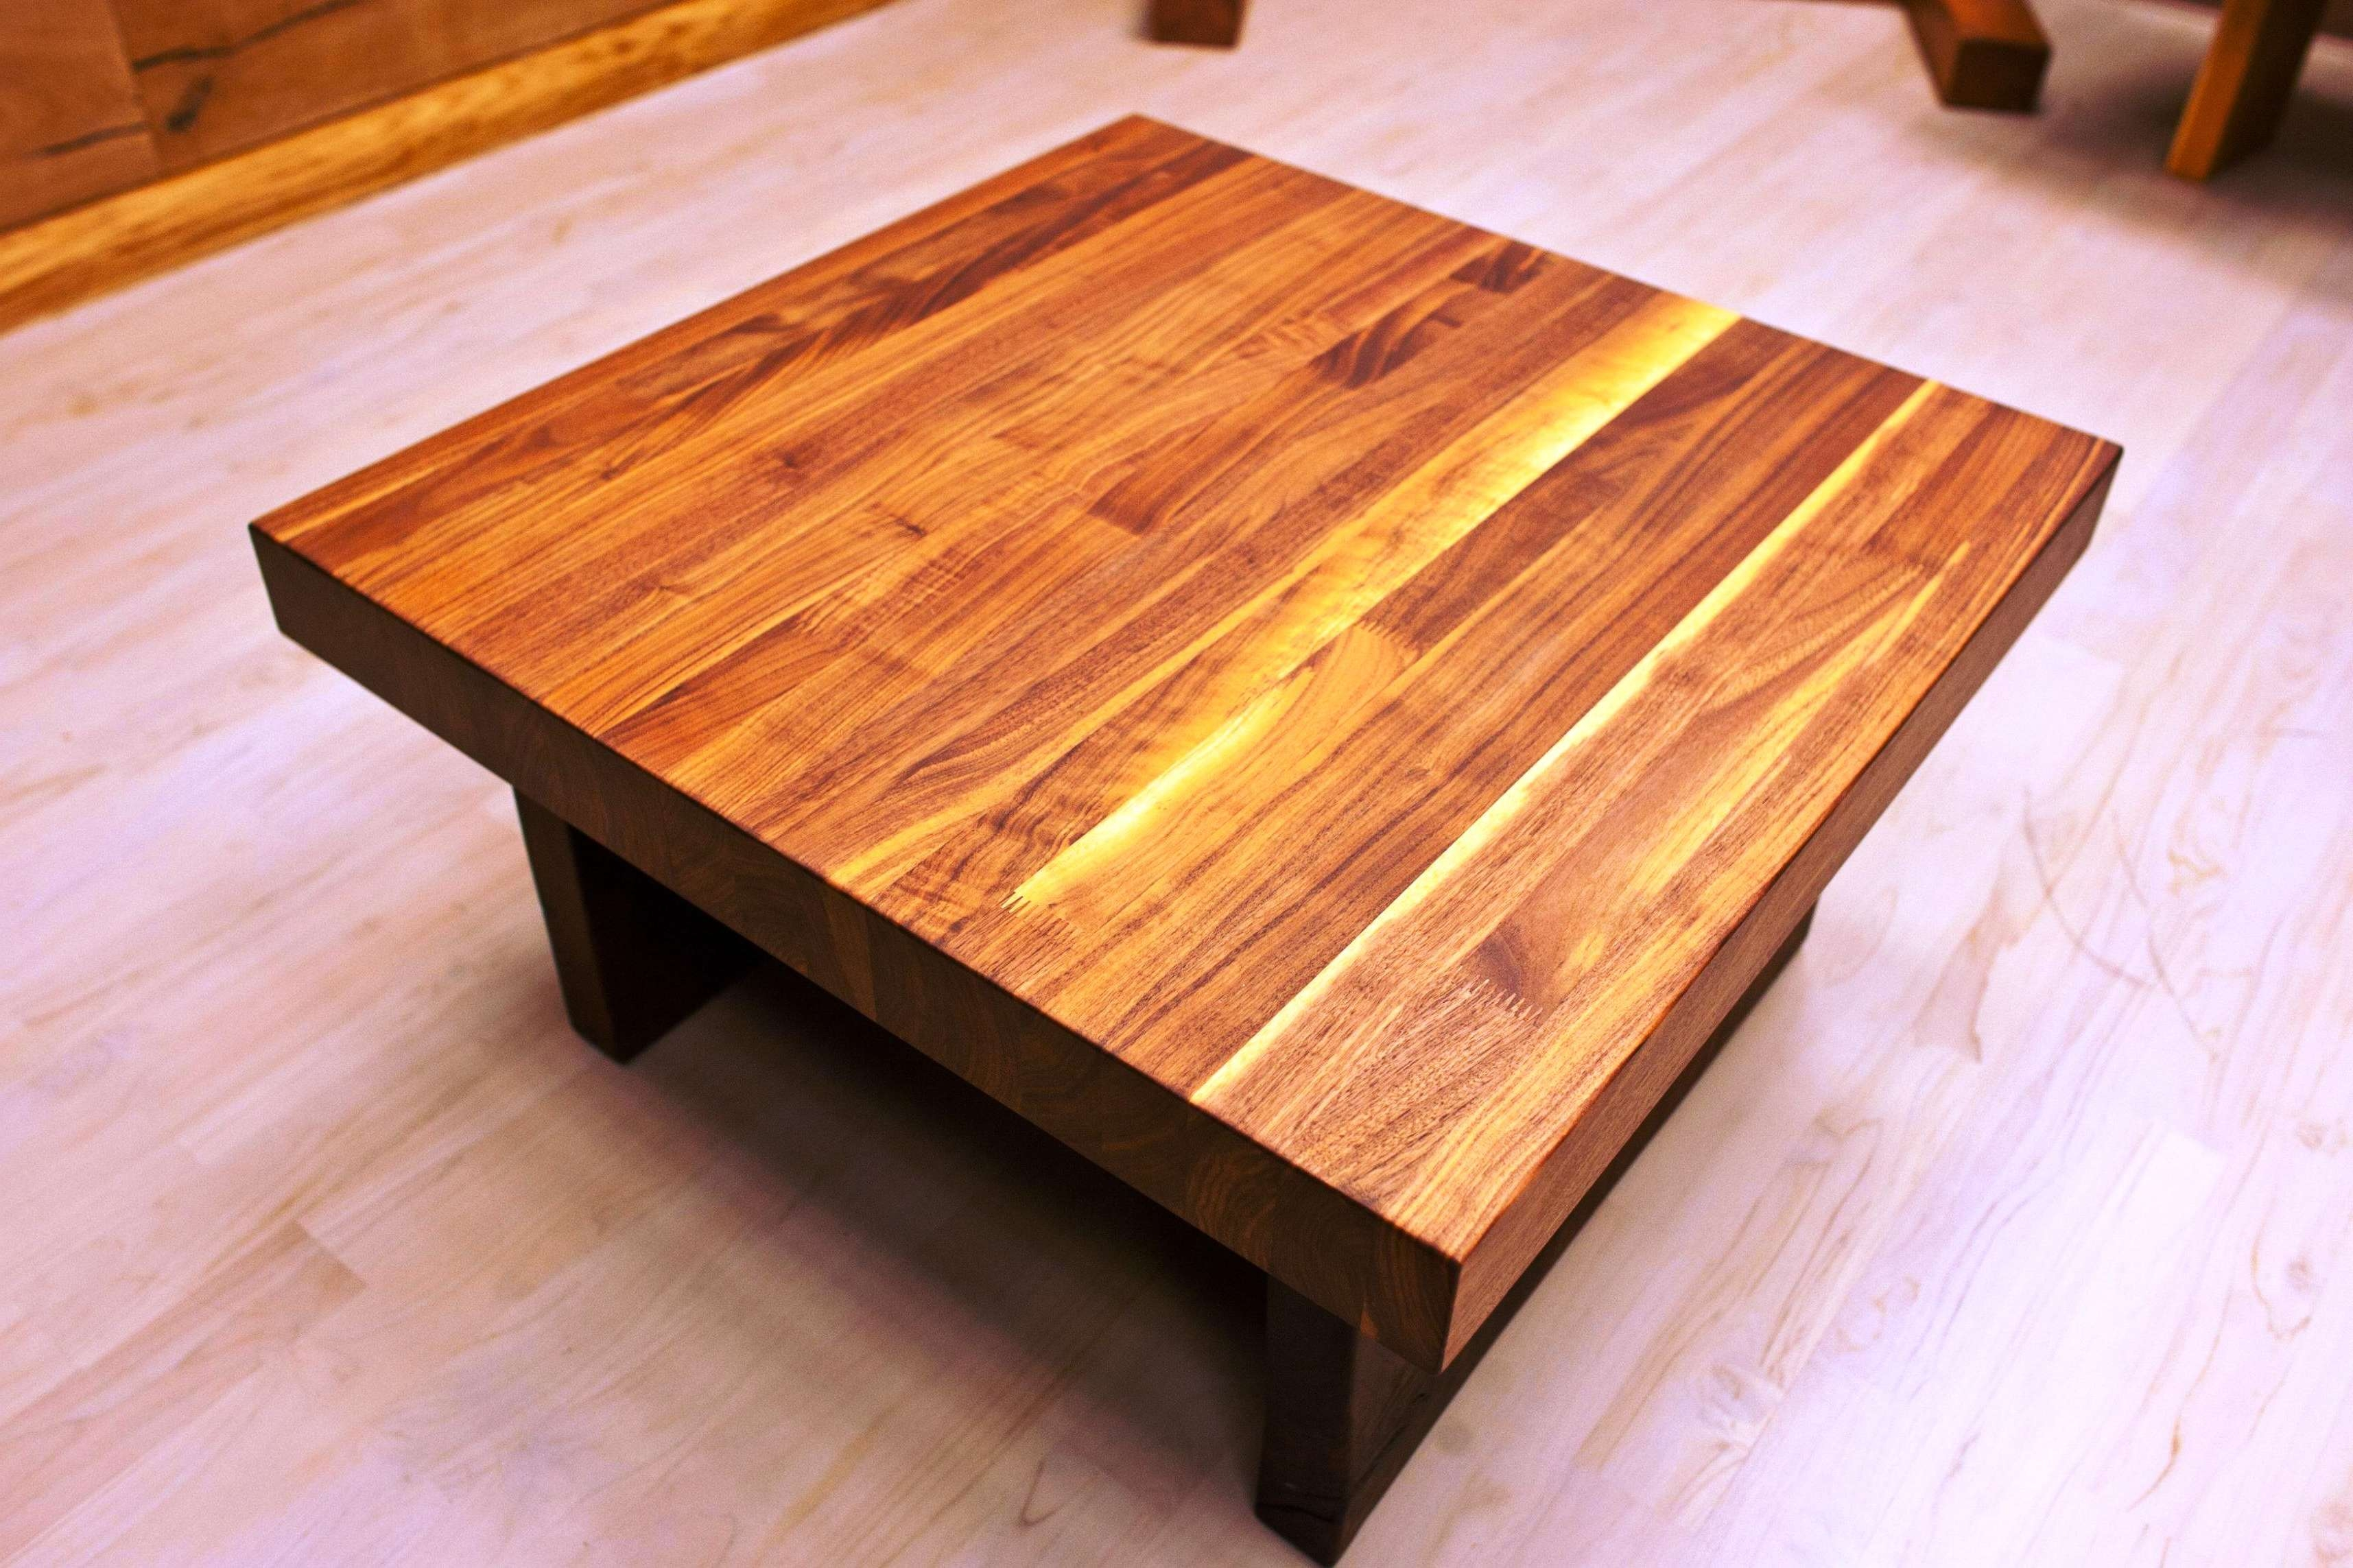 Coffee Table : Amazing Real Wood Coffee Table Cherry Coffee Table Within Popular Solid Wood Coffee Tables (View 3 of 20)